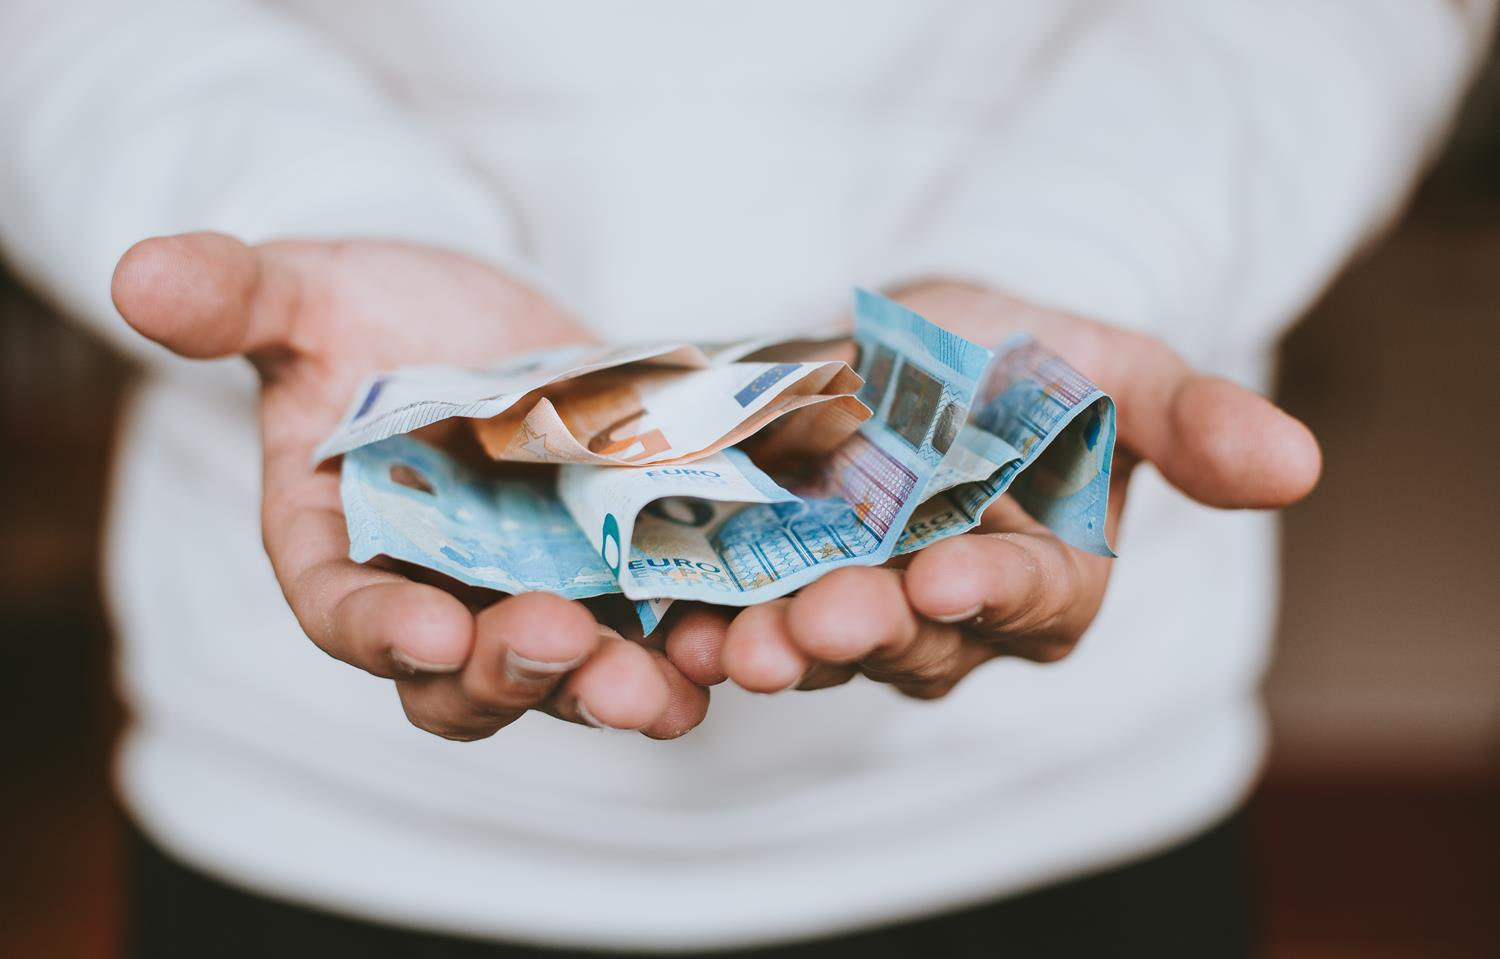 Man with his hands out holding a fist-full of money